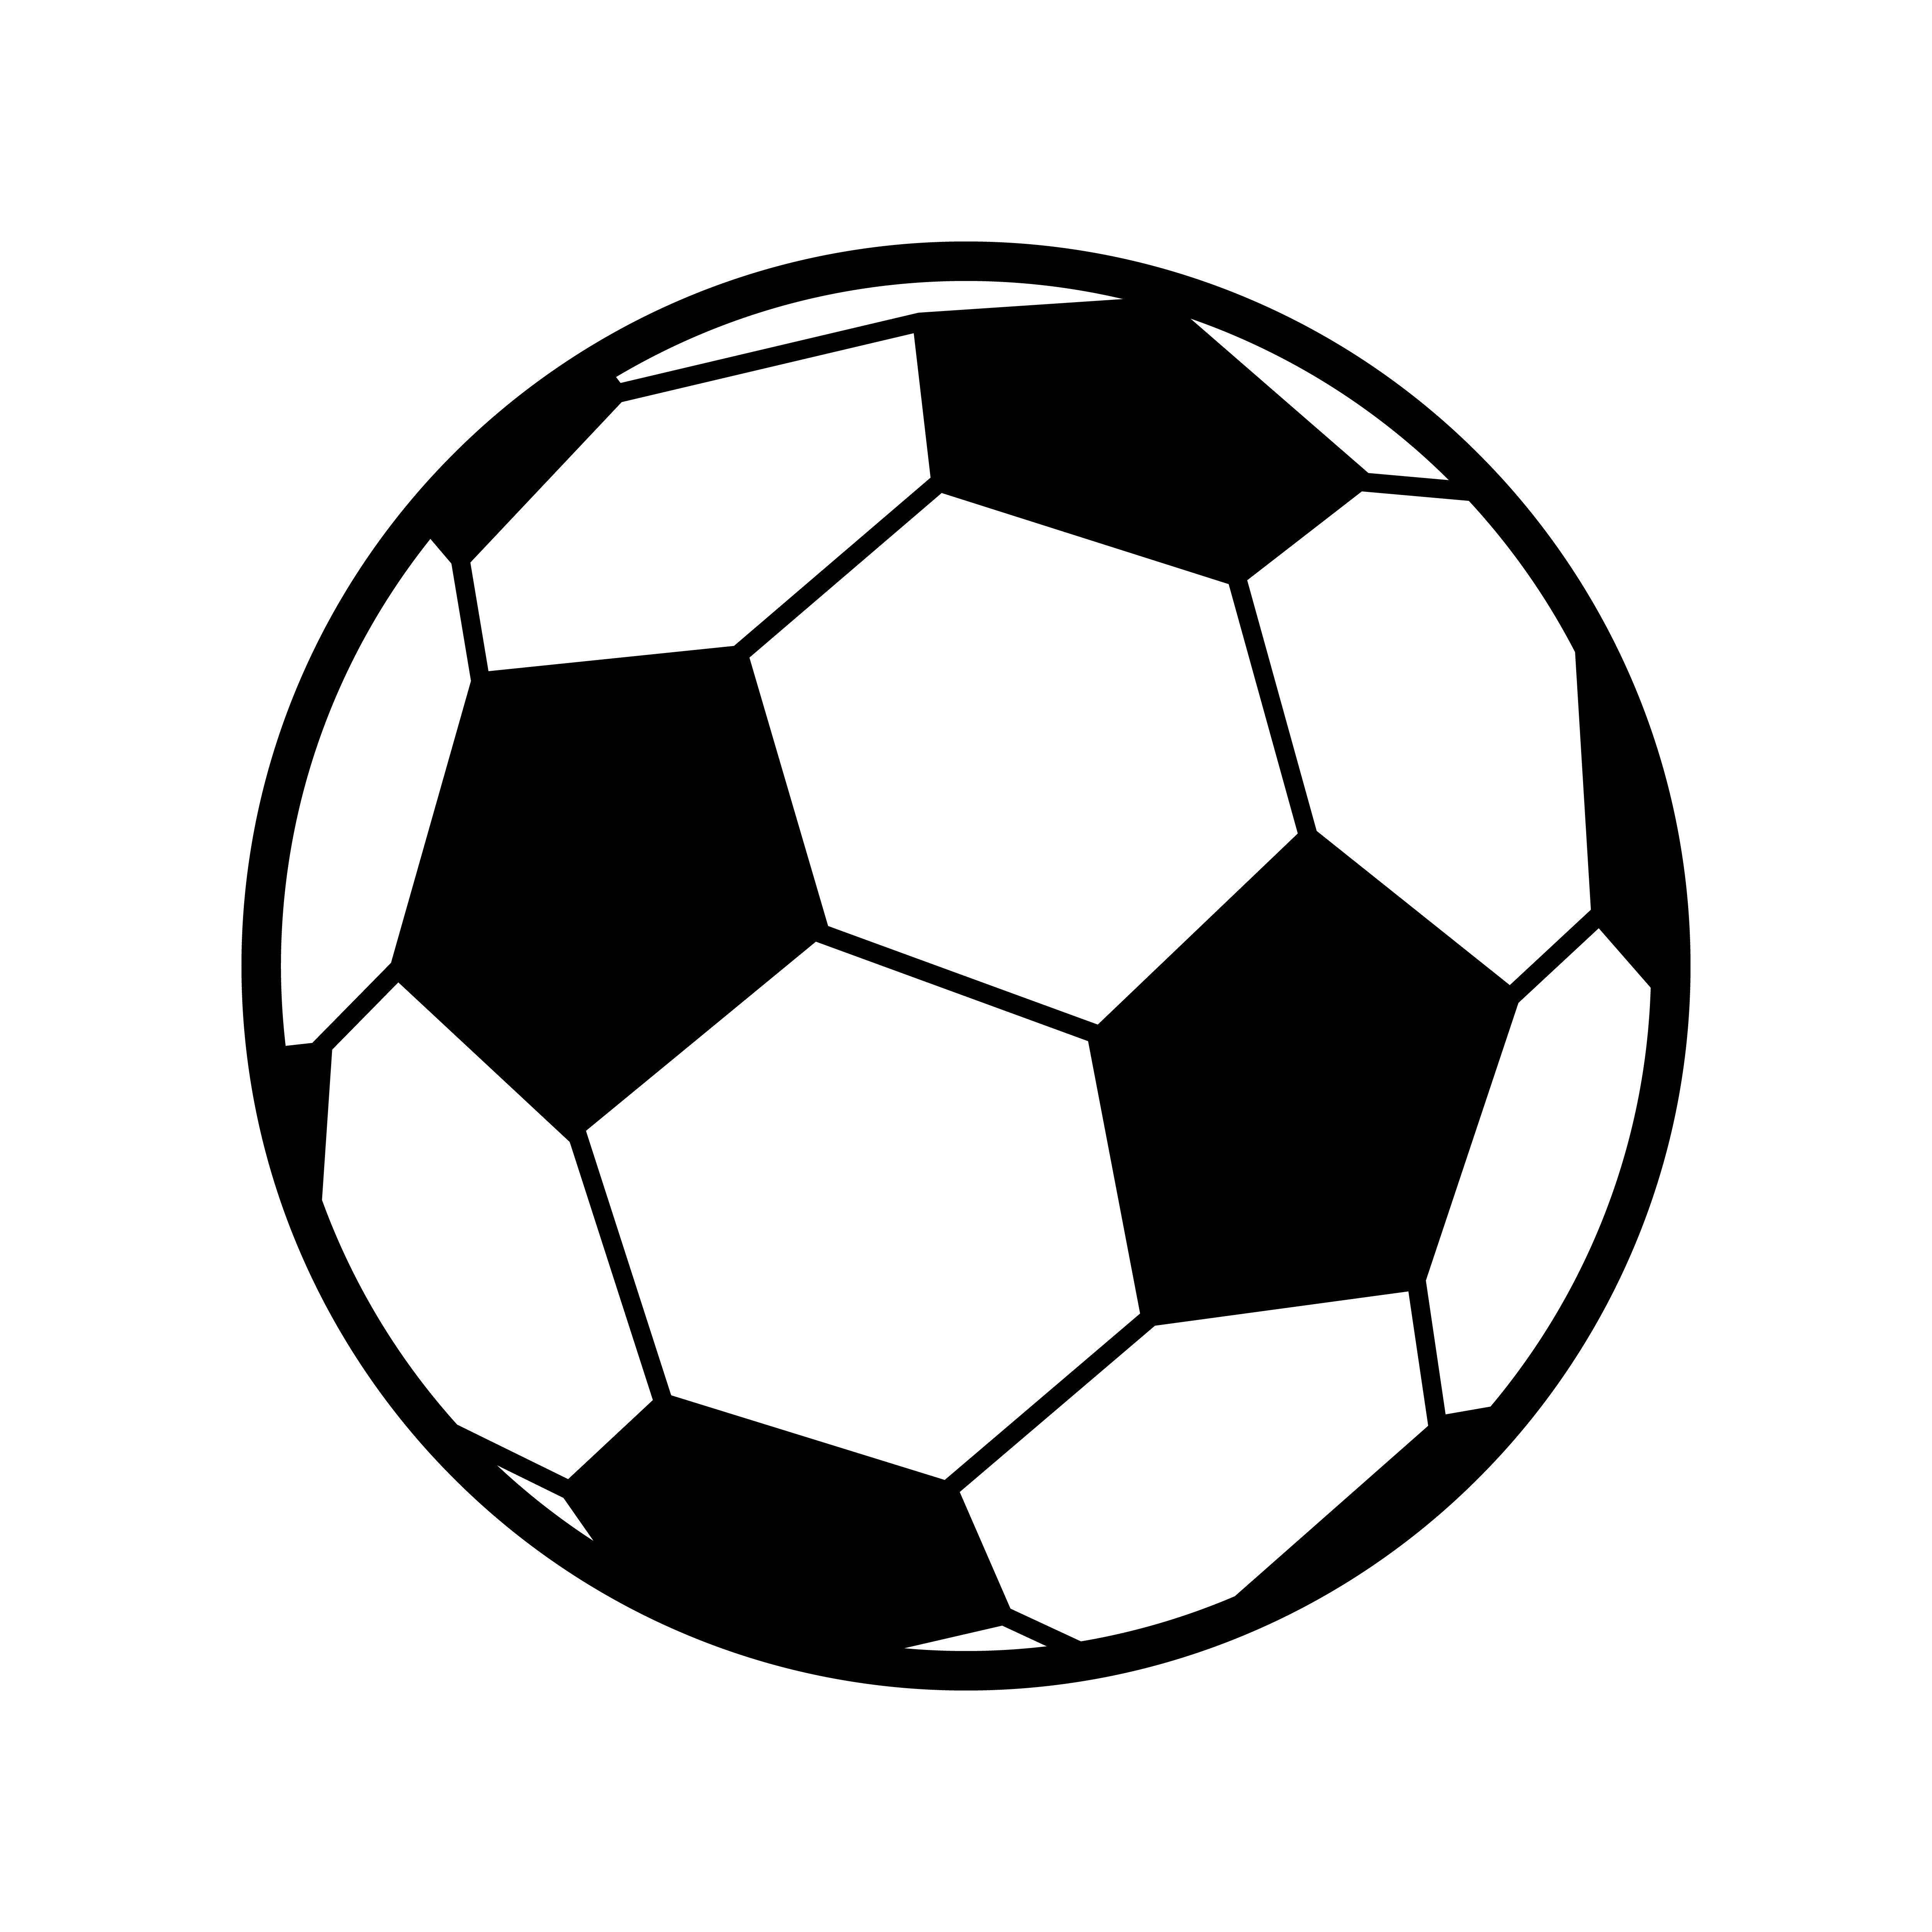 soccer ball vector icon 550584 vector art at vecteezy  vecteezy